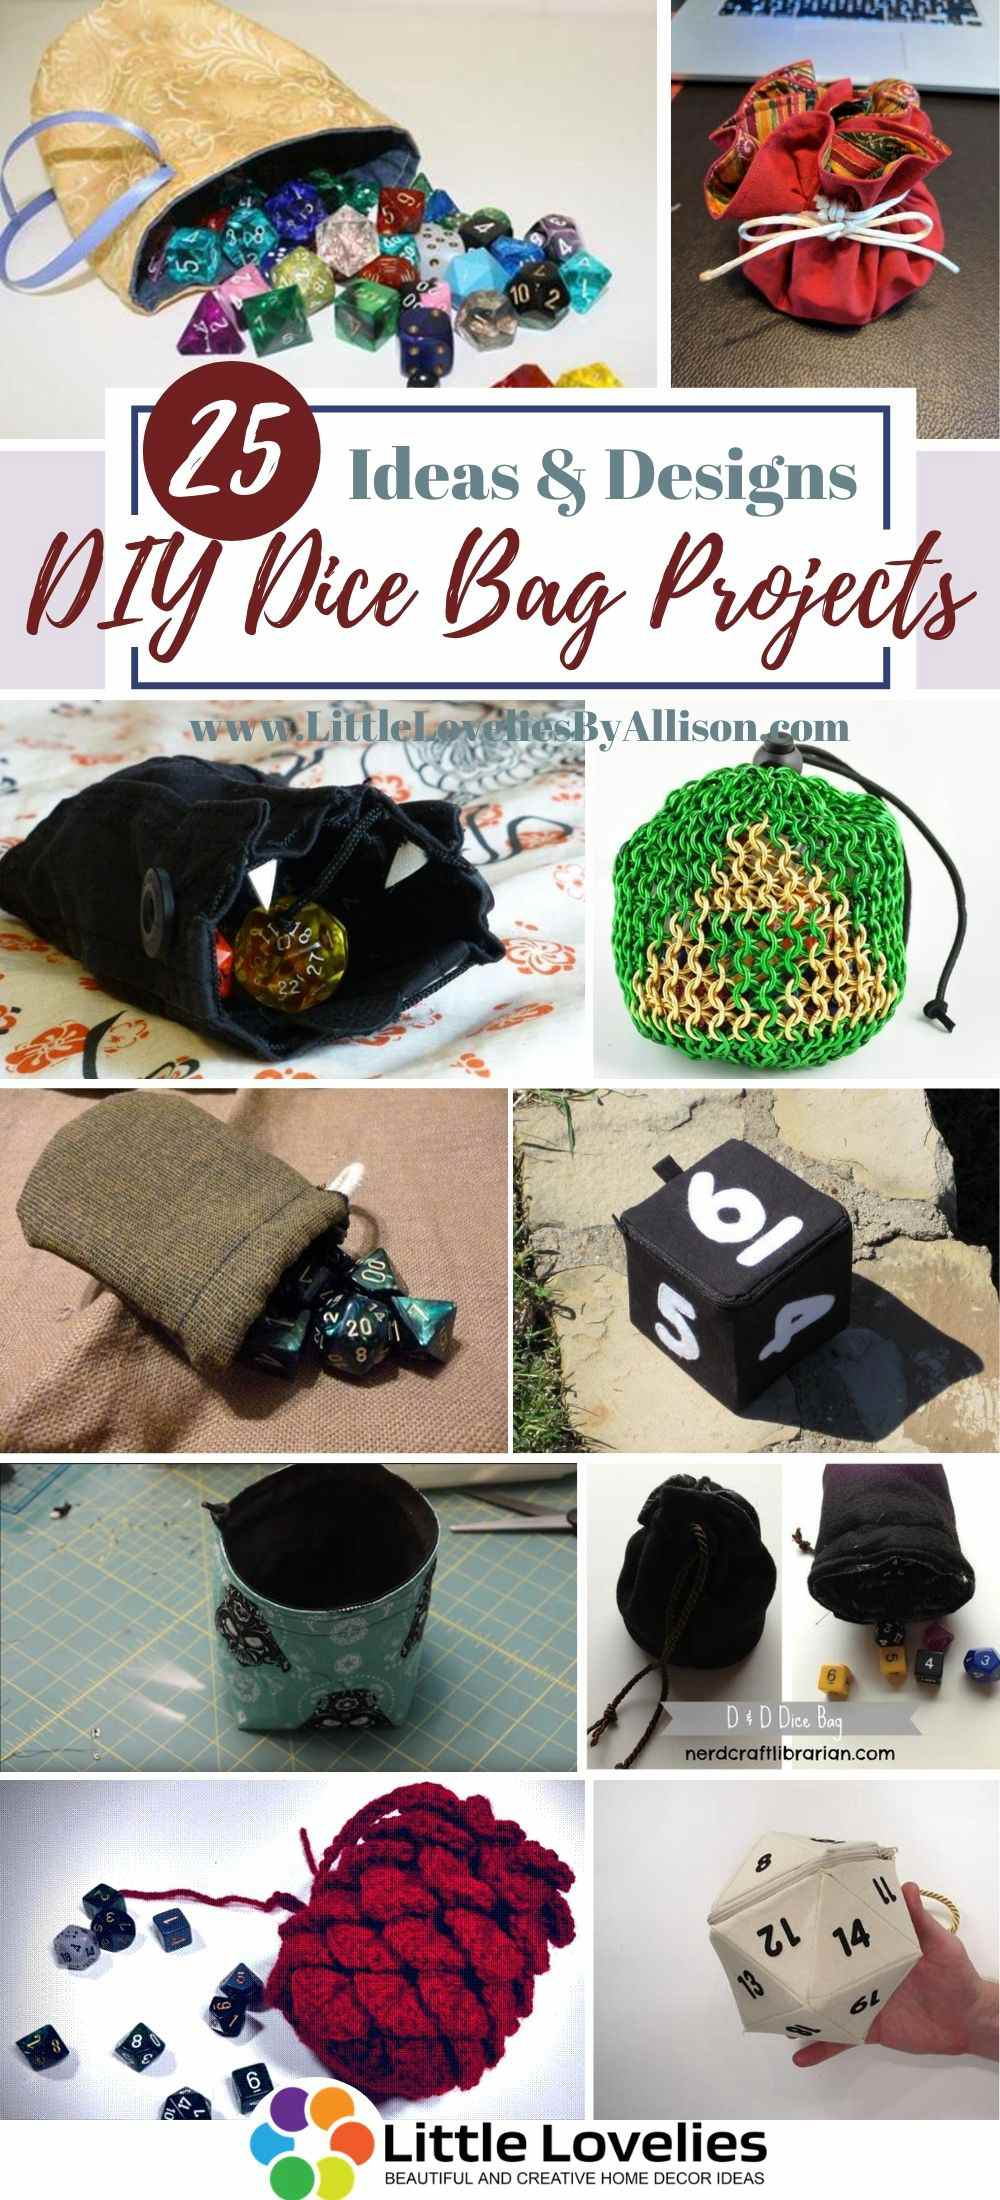 Best-DIY-Dice-Bag Projects